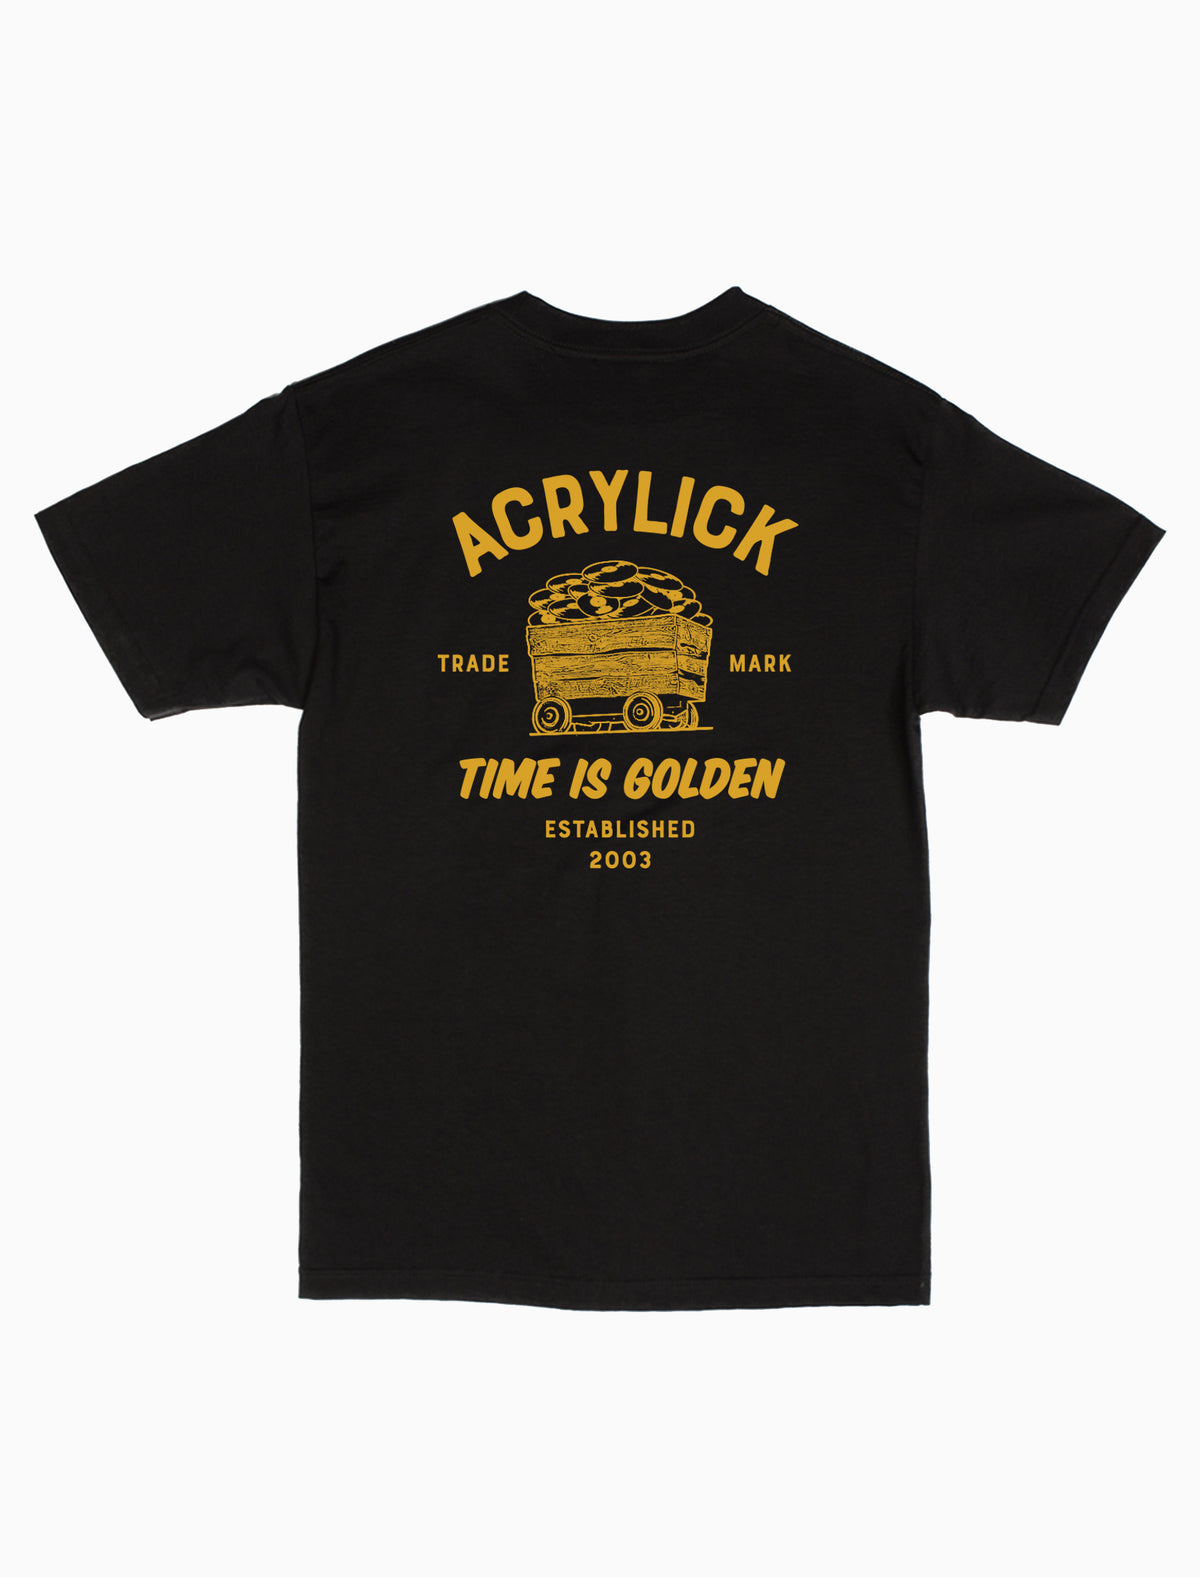 Acrylick Company - 2019 - Time is Golden Tee Short Sleeve Graphic T-Shirt